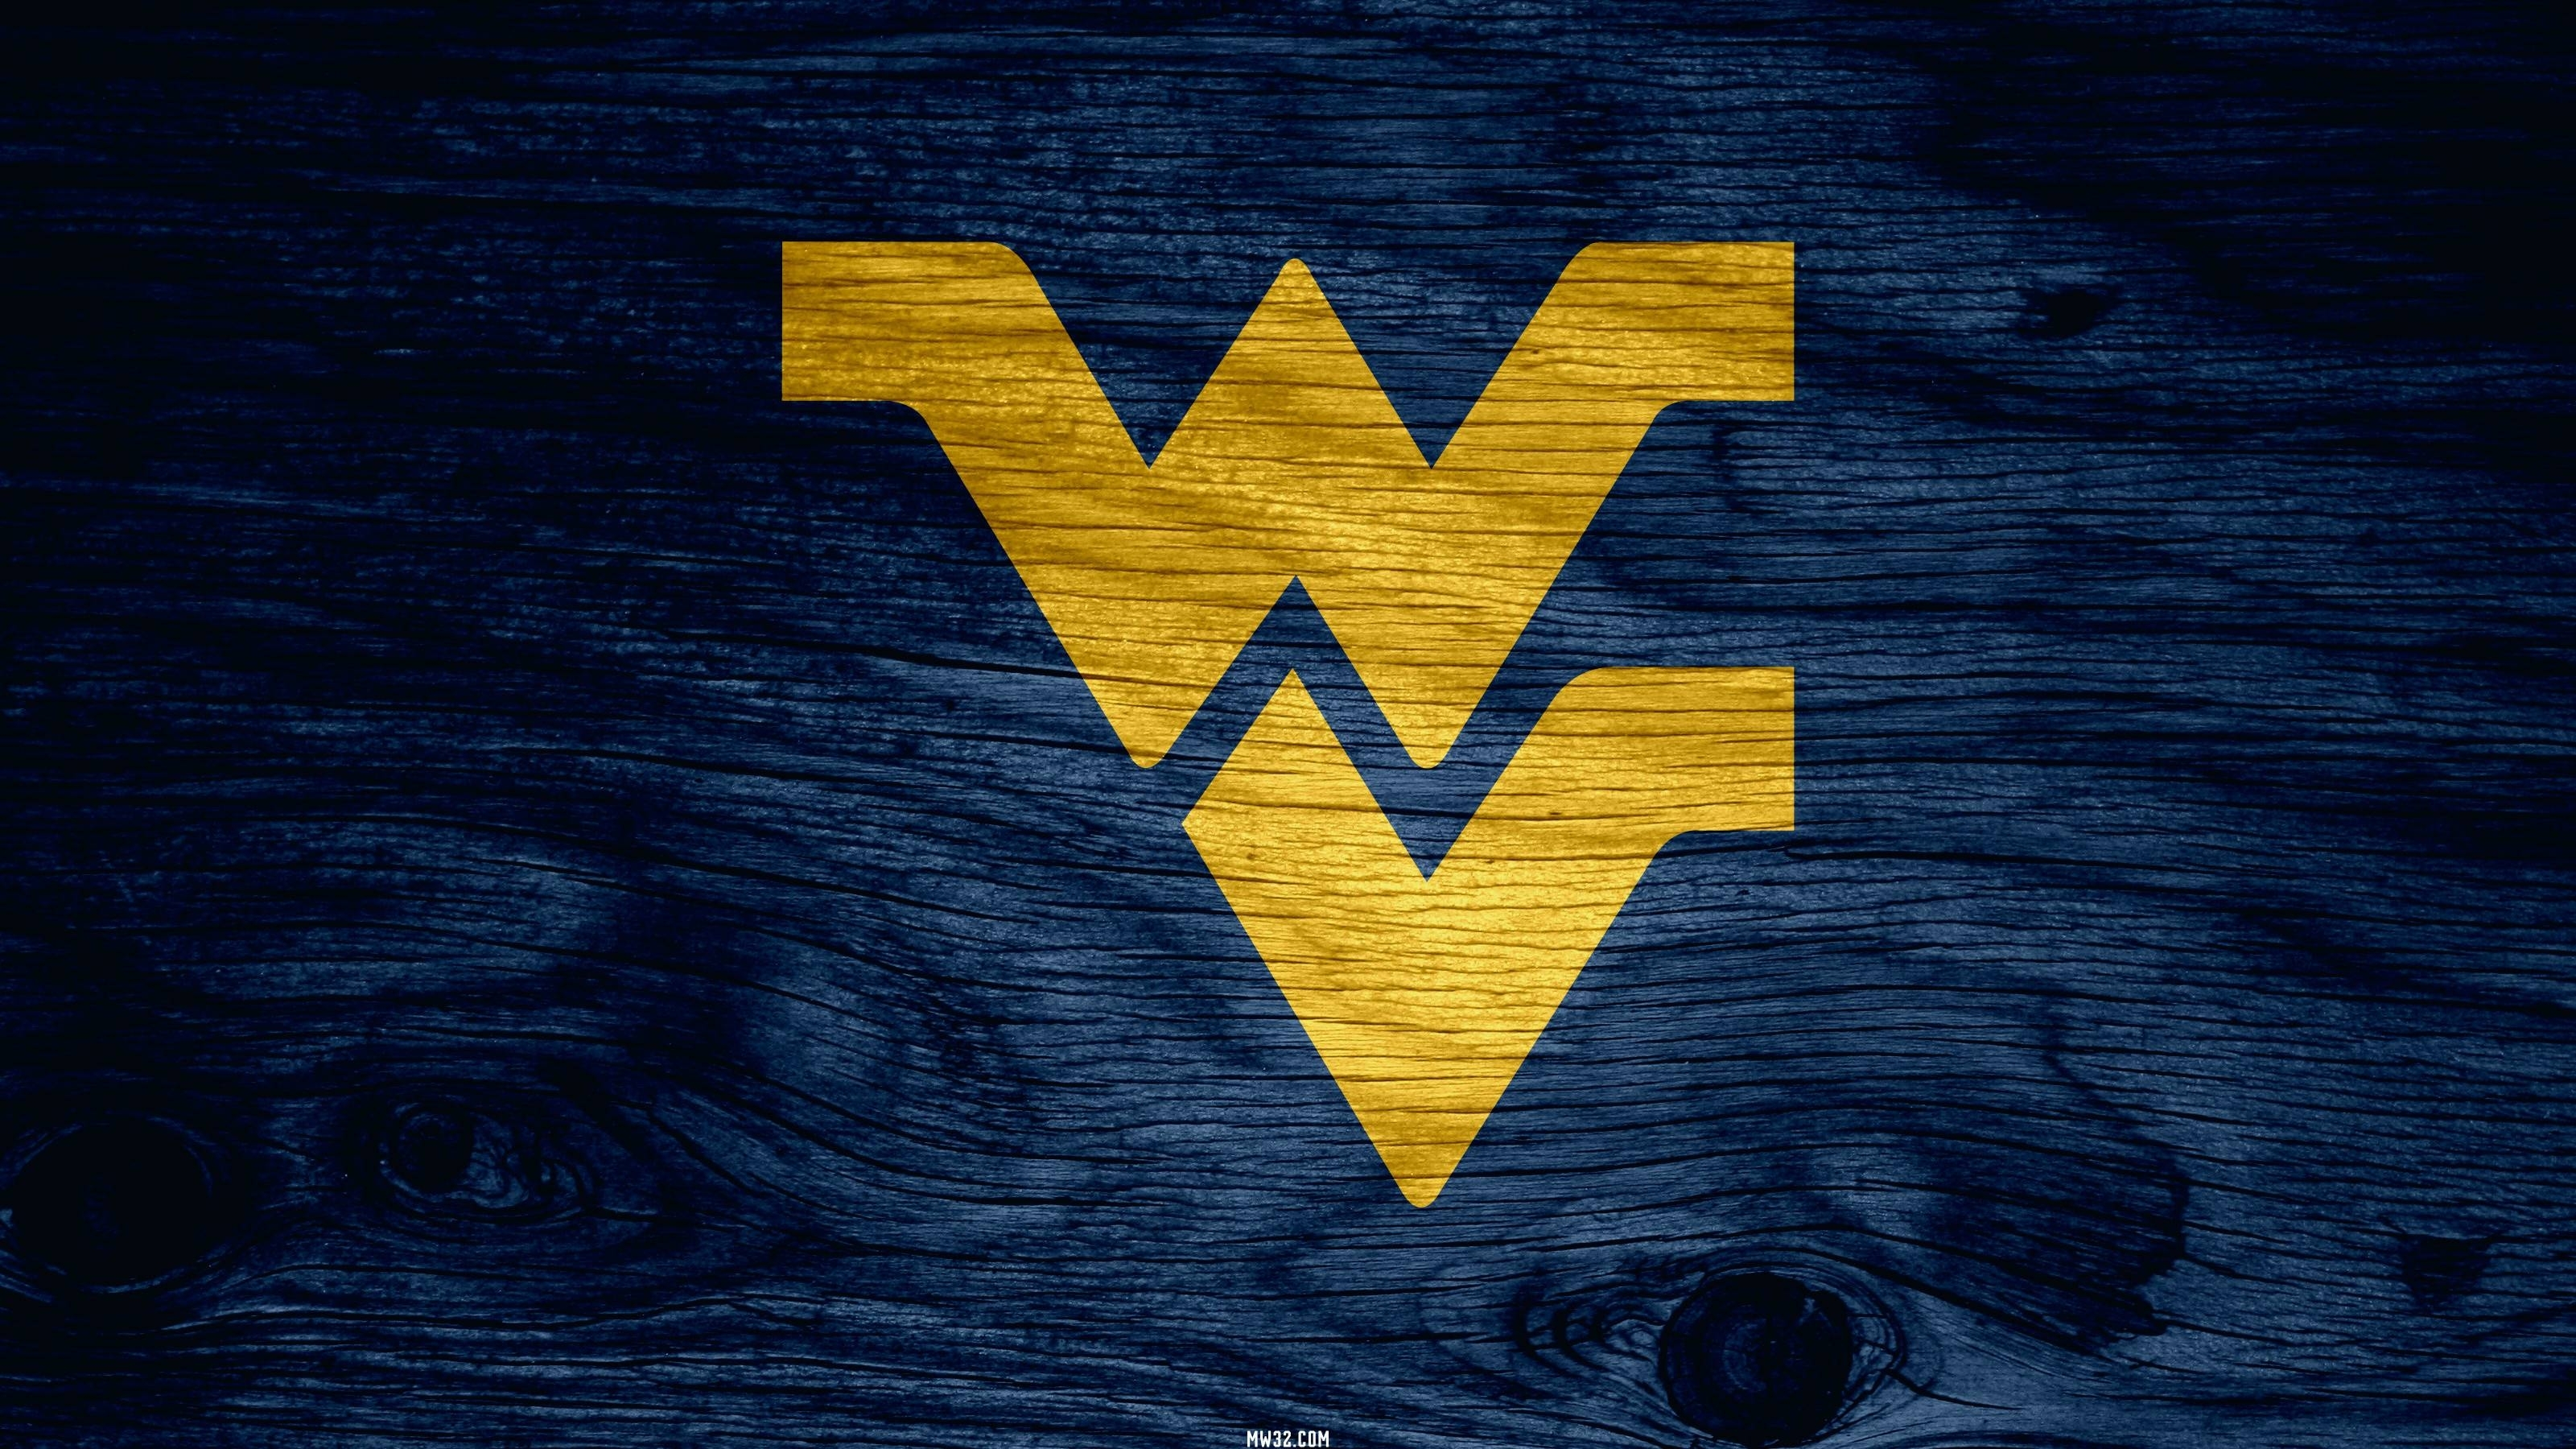 west virginia university wallpapers - wallpaper cave